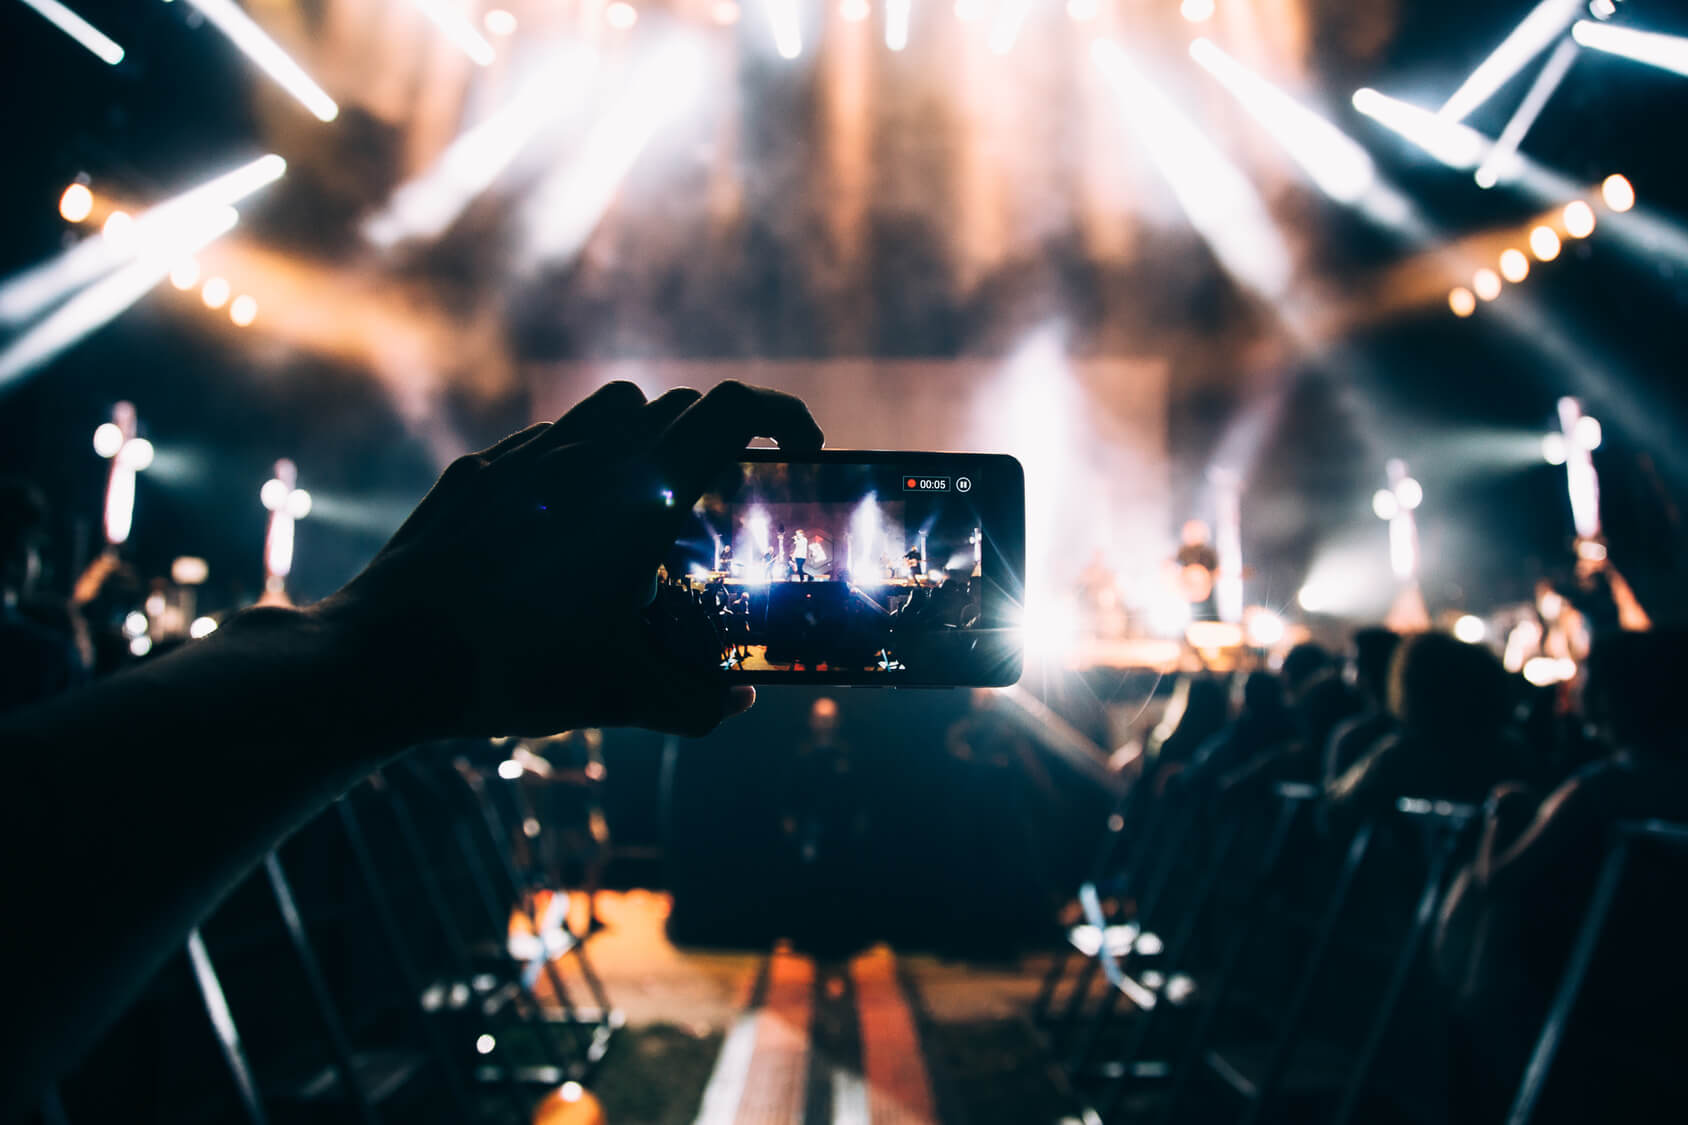 Concert being filmed through an iPhone